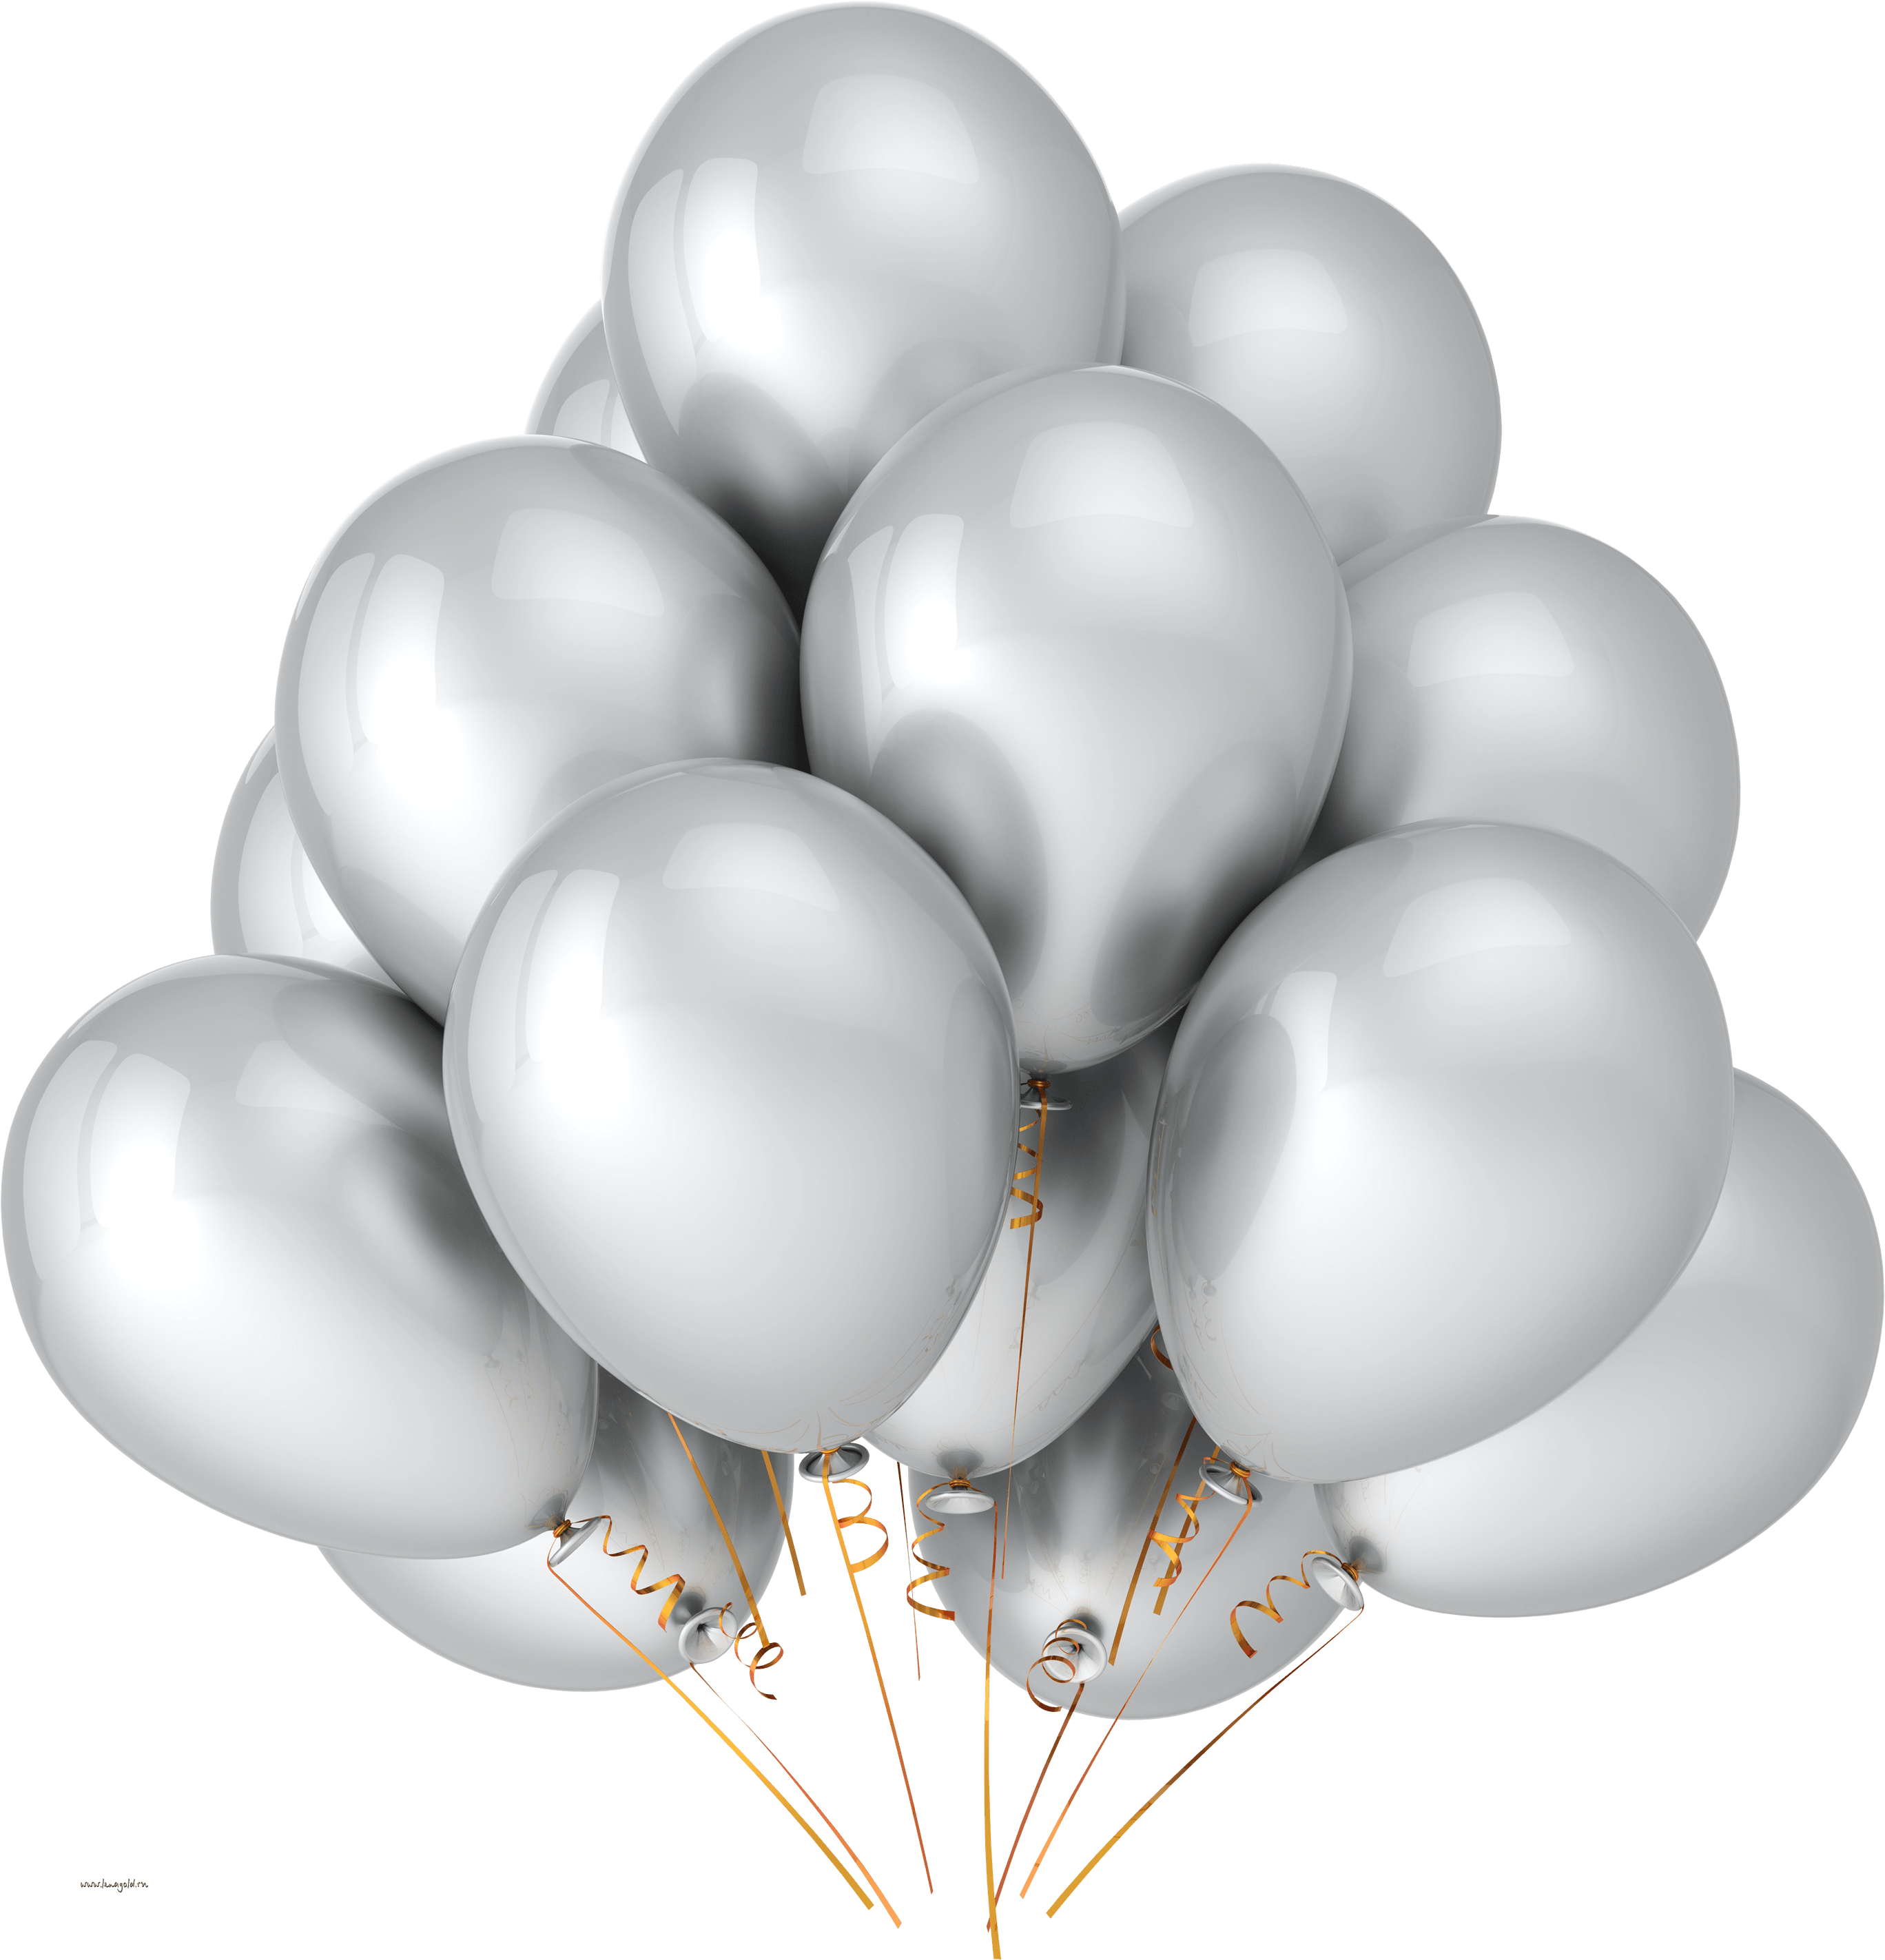 Yellow Balloons Png Image Download Balloons PNG Image